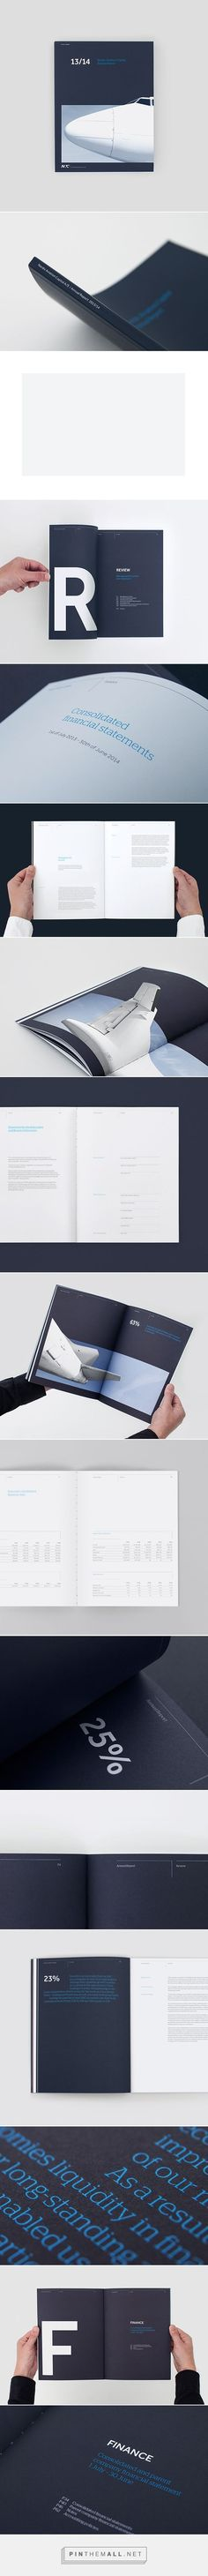 Design pornography clean and simple, pure beauty. NAC - Annual Report